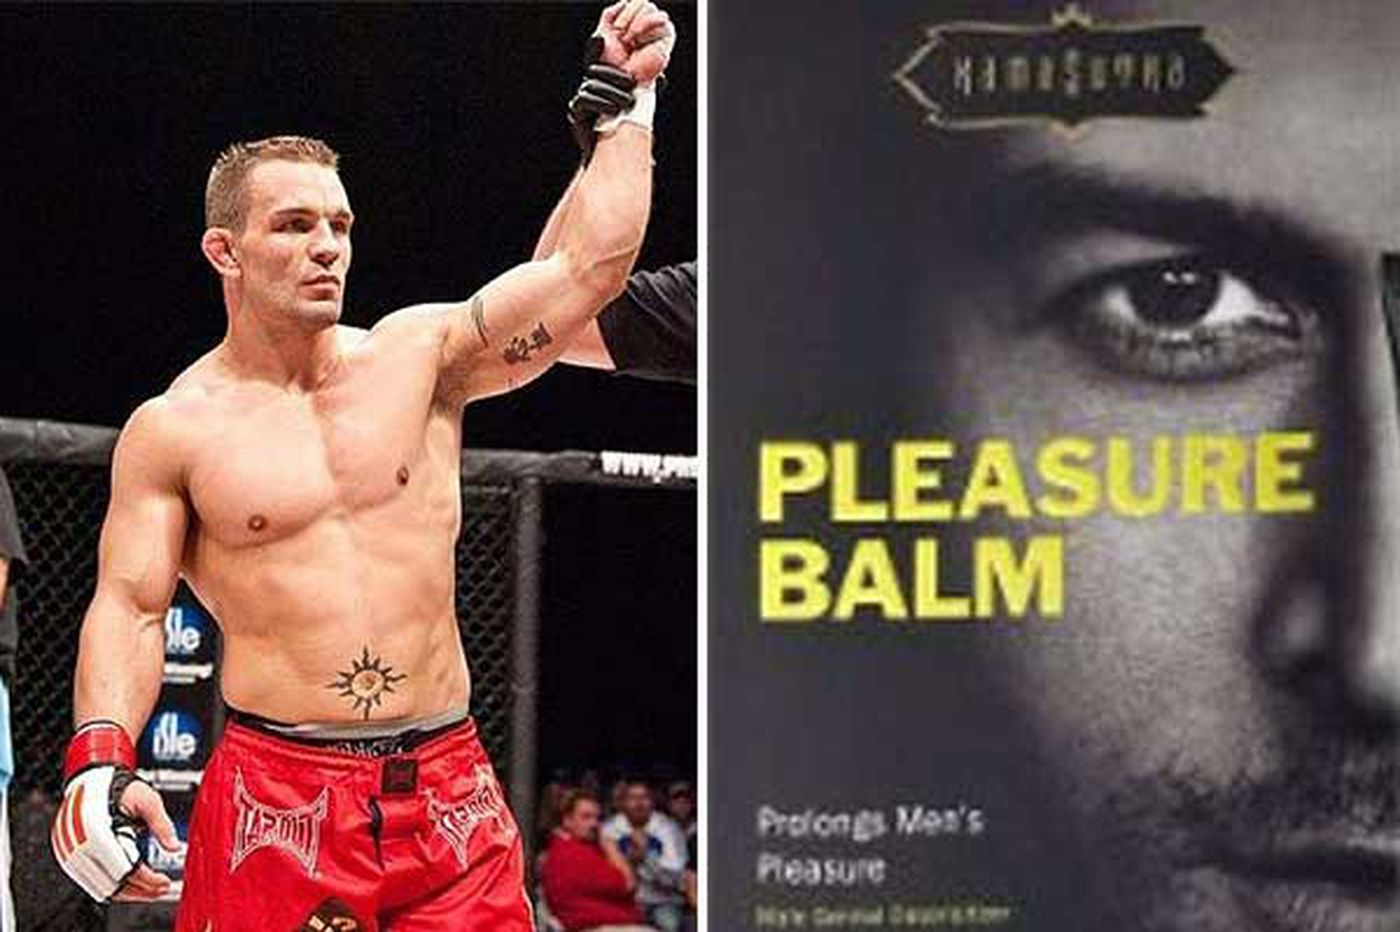 Martial artist sues South Street store over penis gel